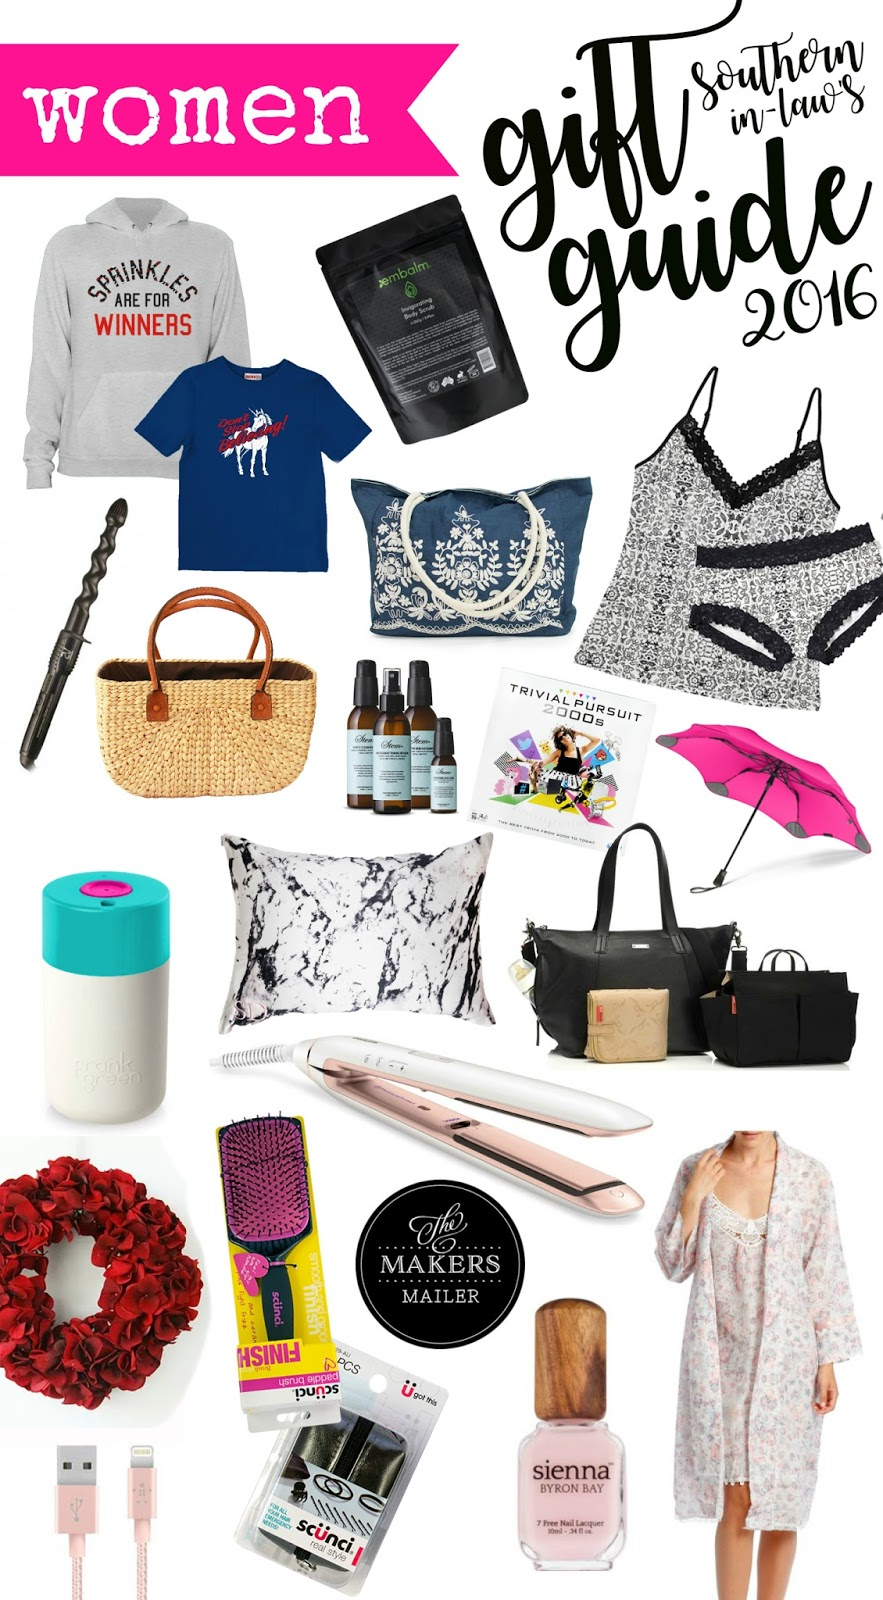 2016 Women S Christmas Gift Guide